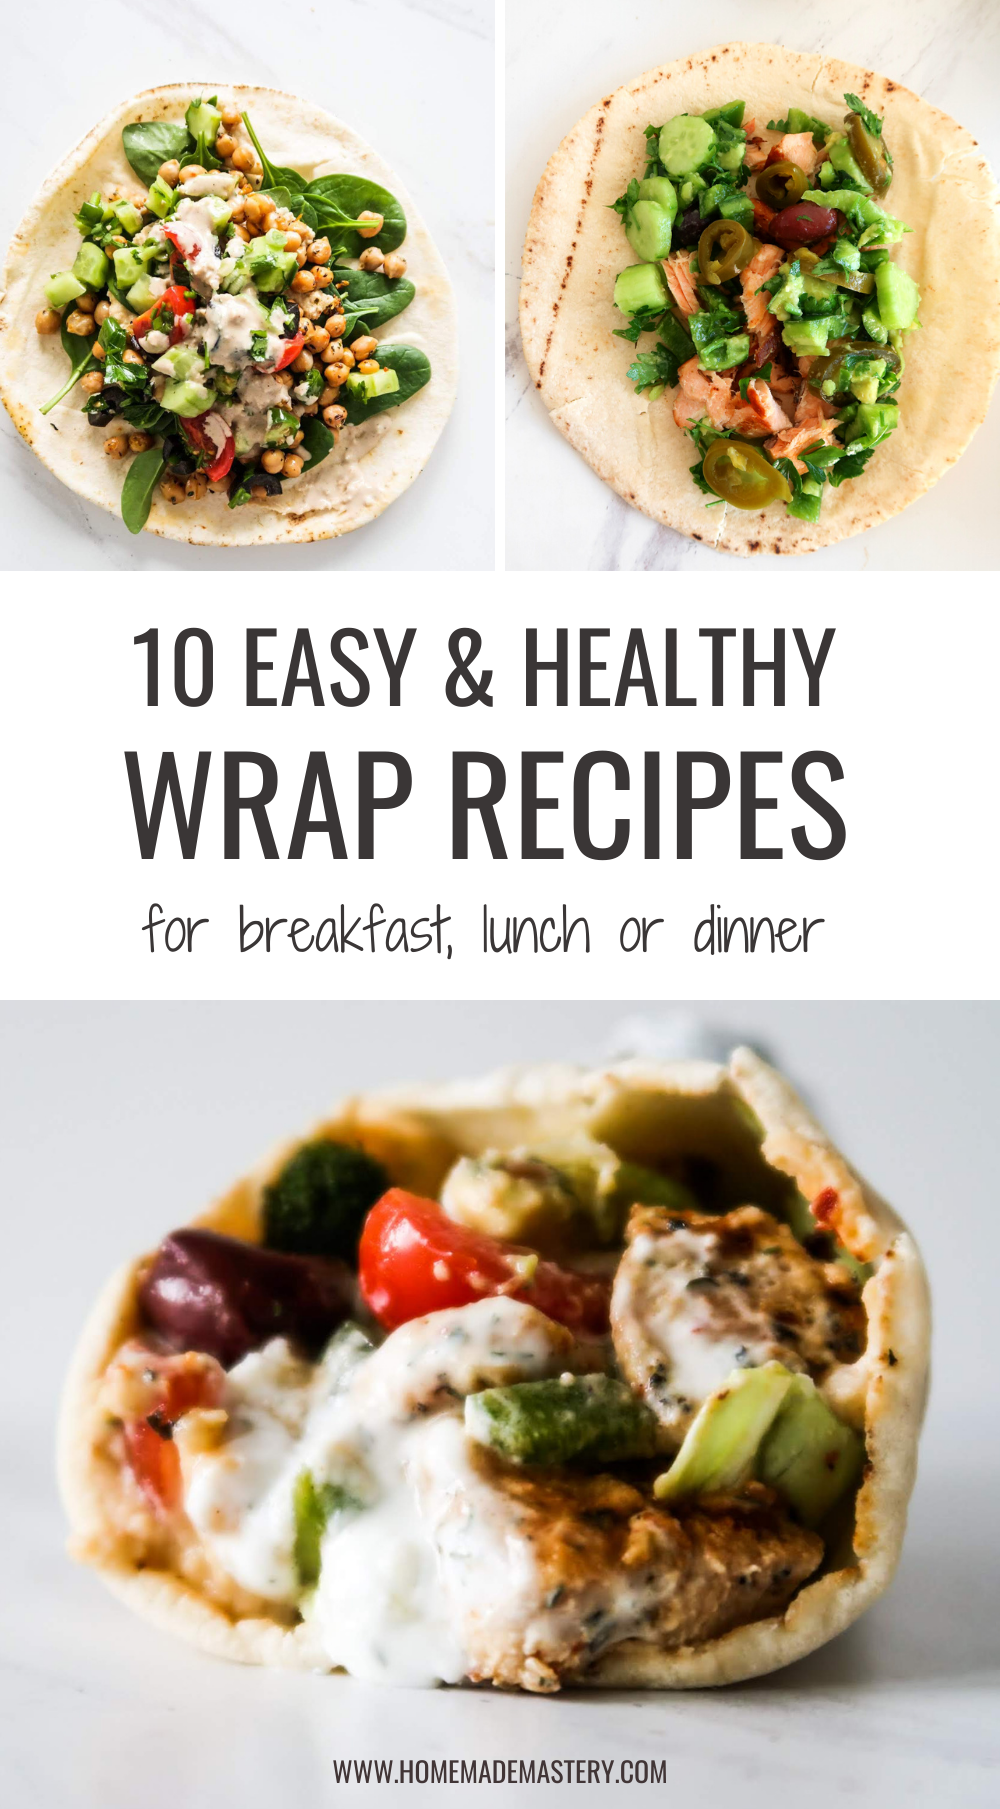 10 easy and healthy wrap recipes that you'll want to eat for breakfast, lunch or dinner! This collection includes a delicious breakfast burrito, Mediterranean wraps, vegan and vegetarian wraps, chicken and fish wraps, lettuce wraps and more!